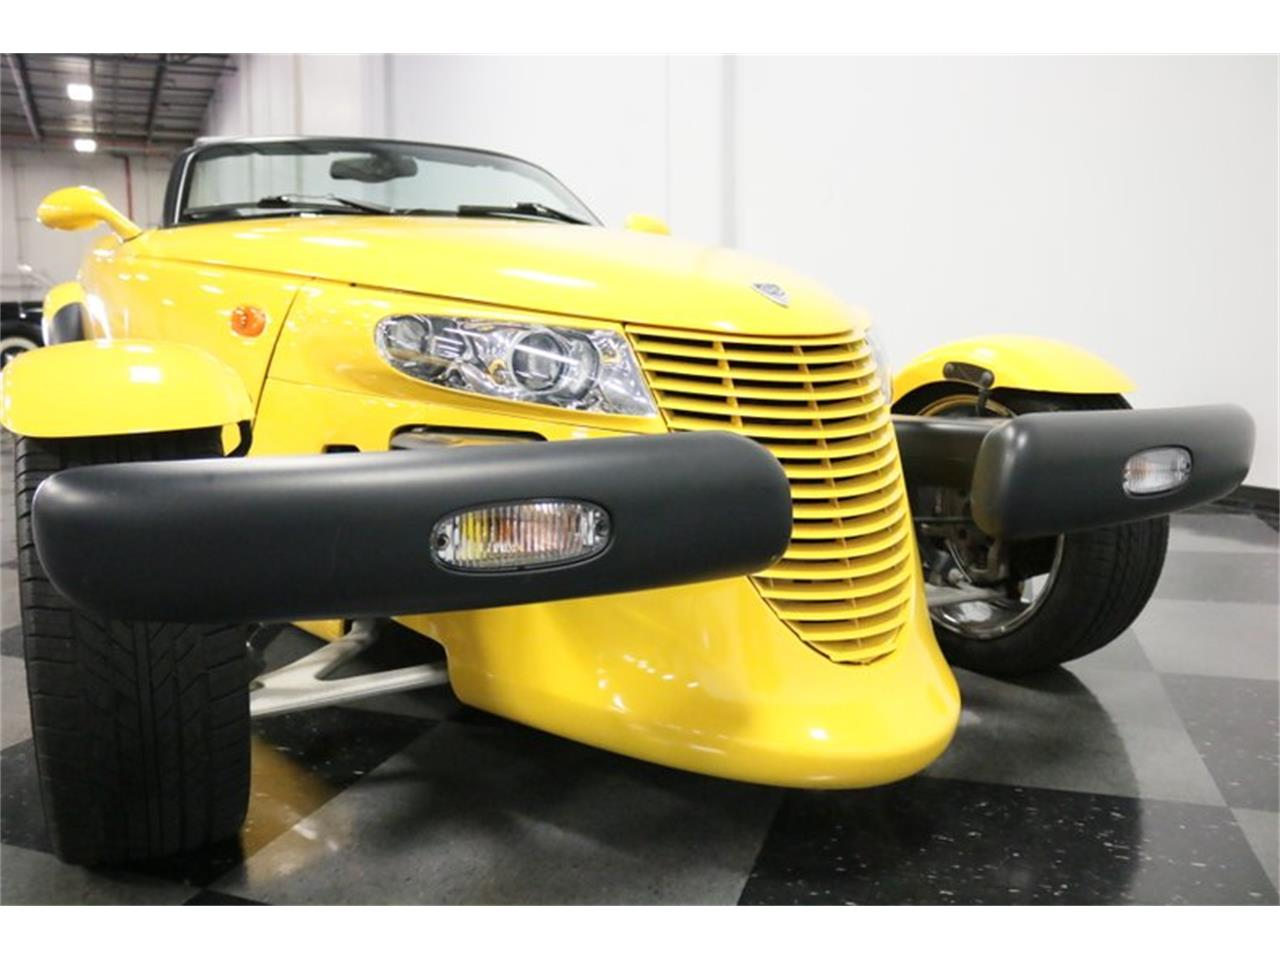 2002 Chrysler Prowler (CC-1246520) for sale in Ft Worth, Texas